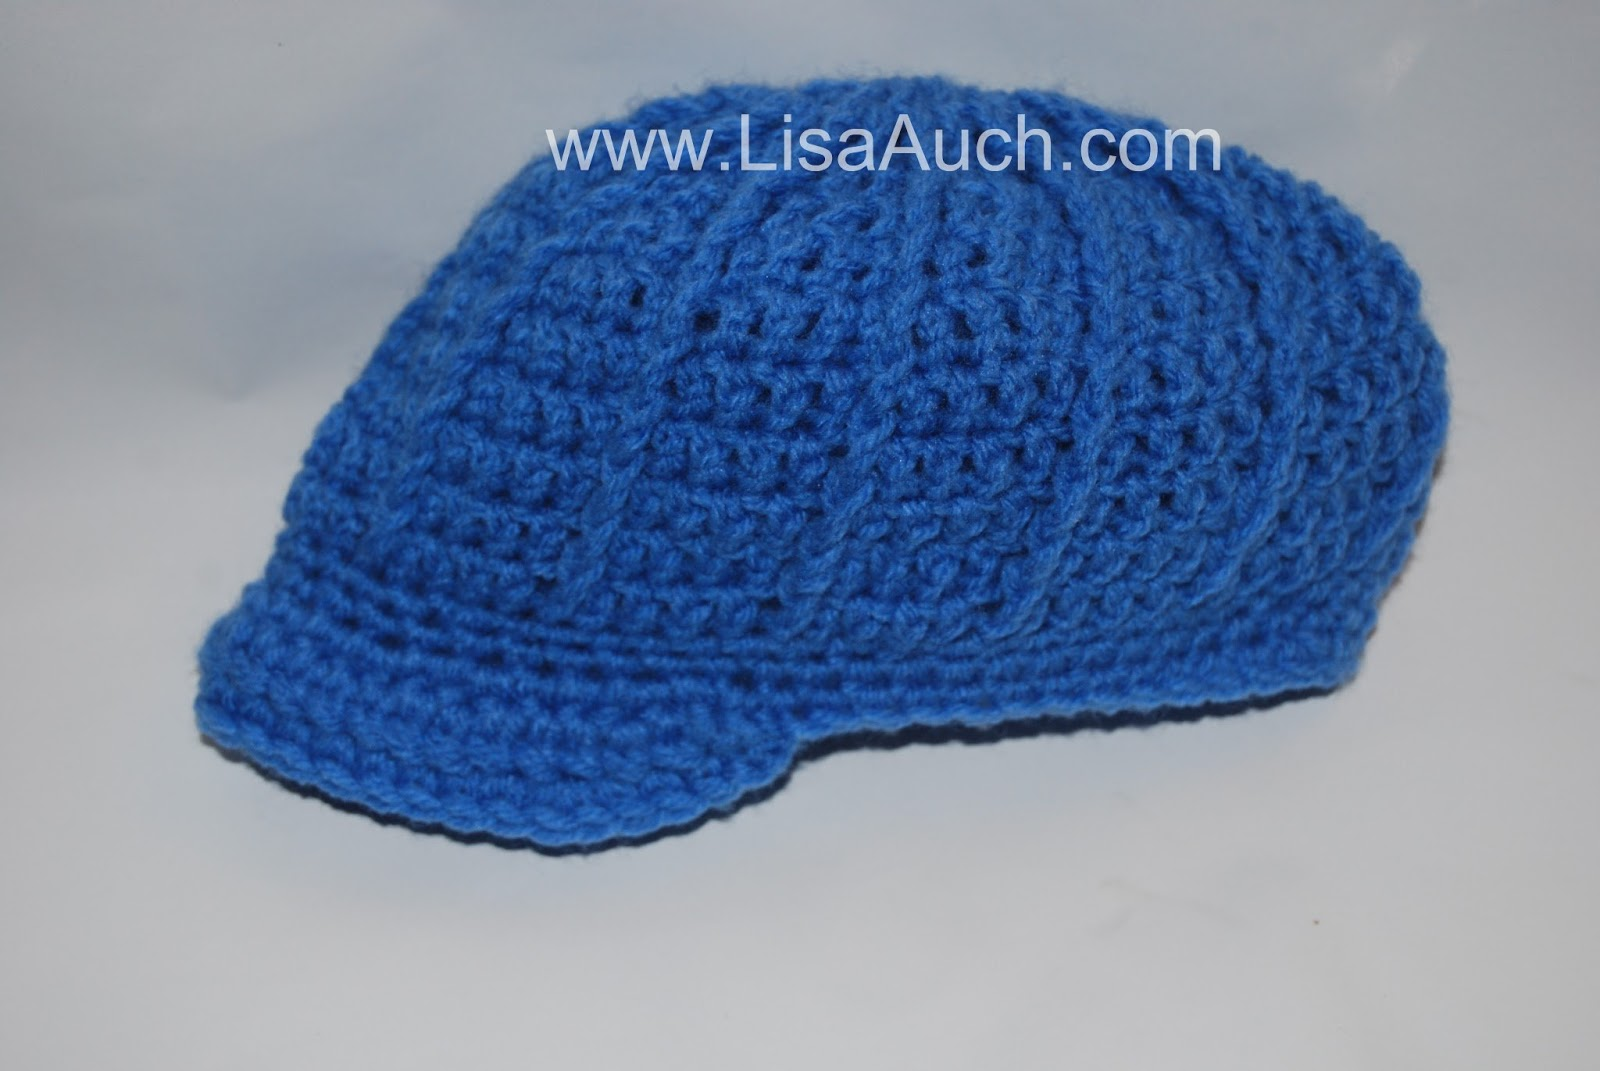 Super Cute One-Ball Newsboy Cap Knitting Pattern from SweaterBabe.com